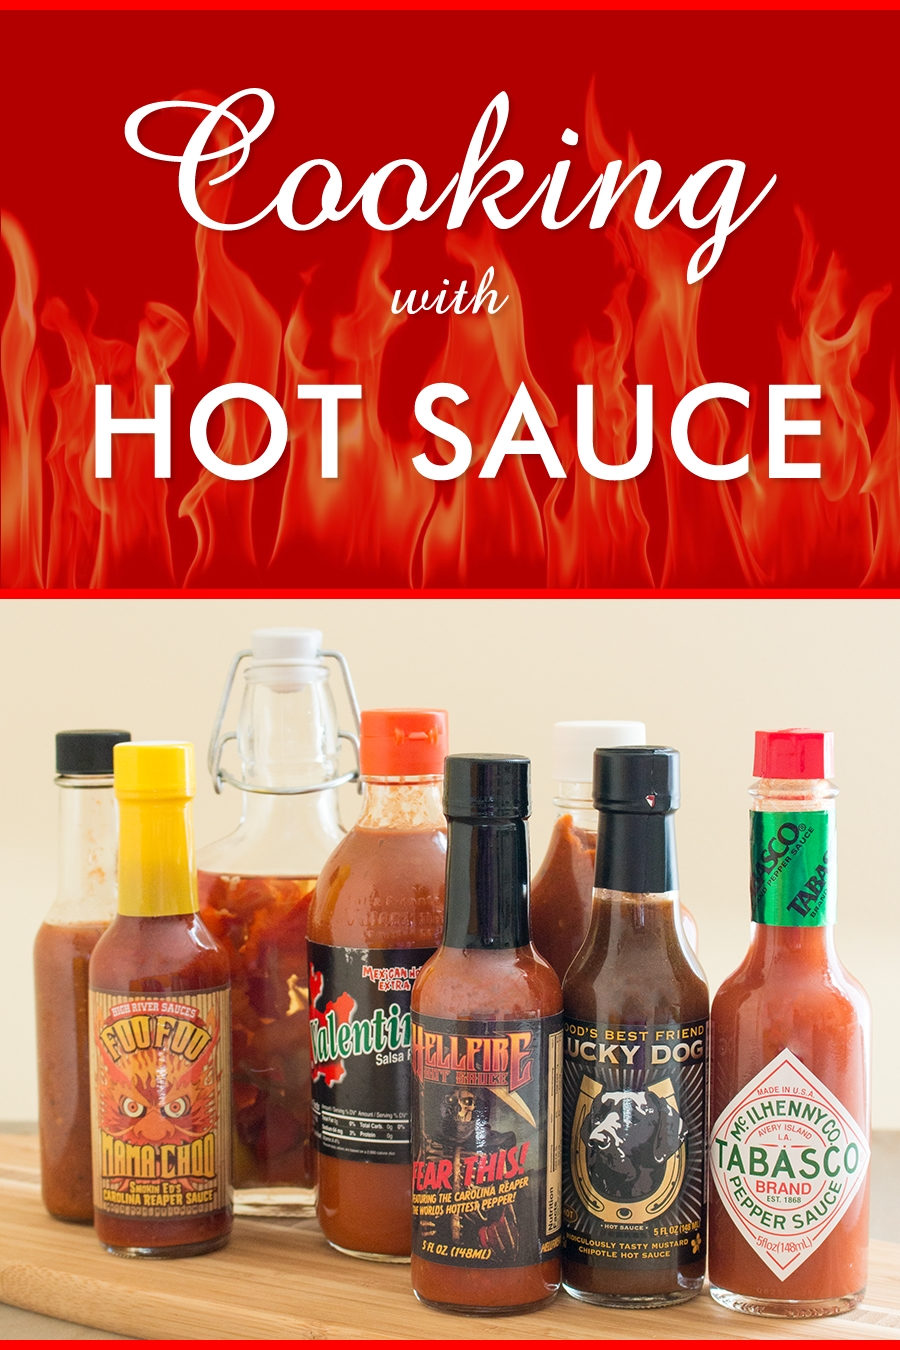 Cooking with Hot Sauce